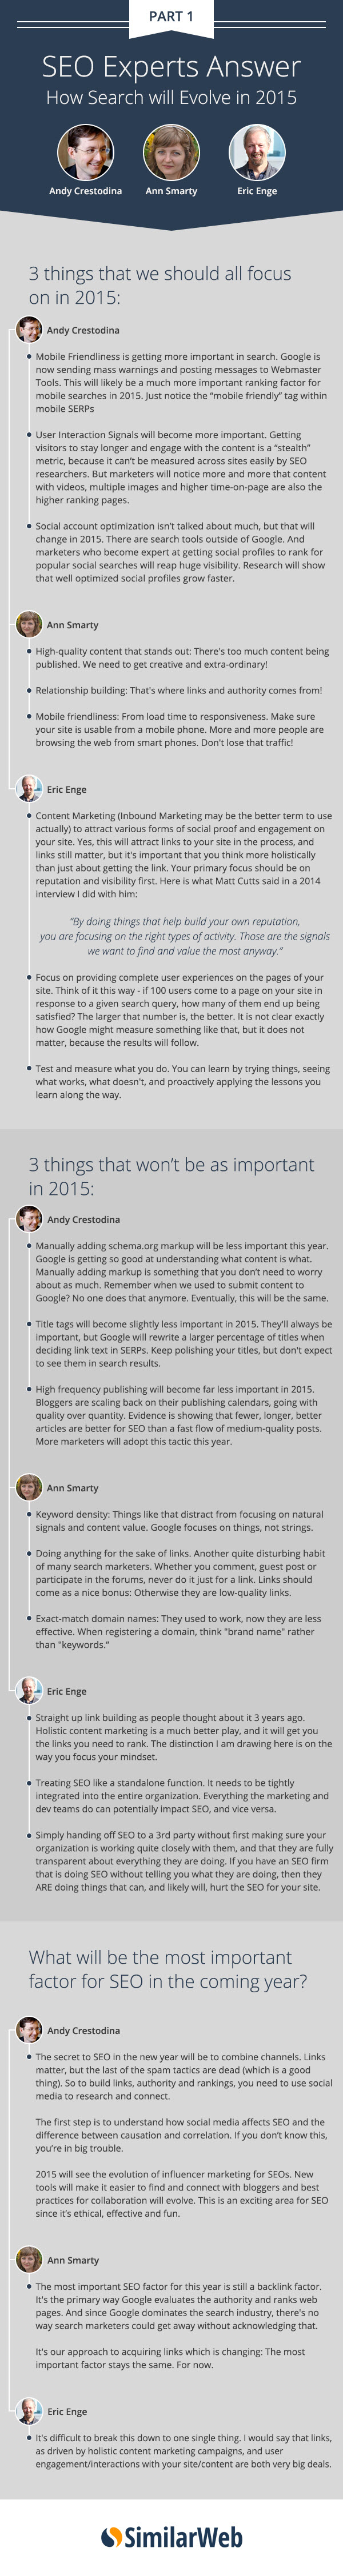 SEO Experts infographic P1